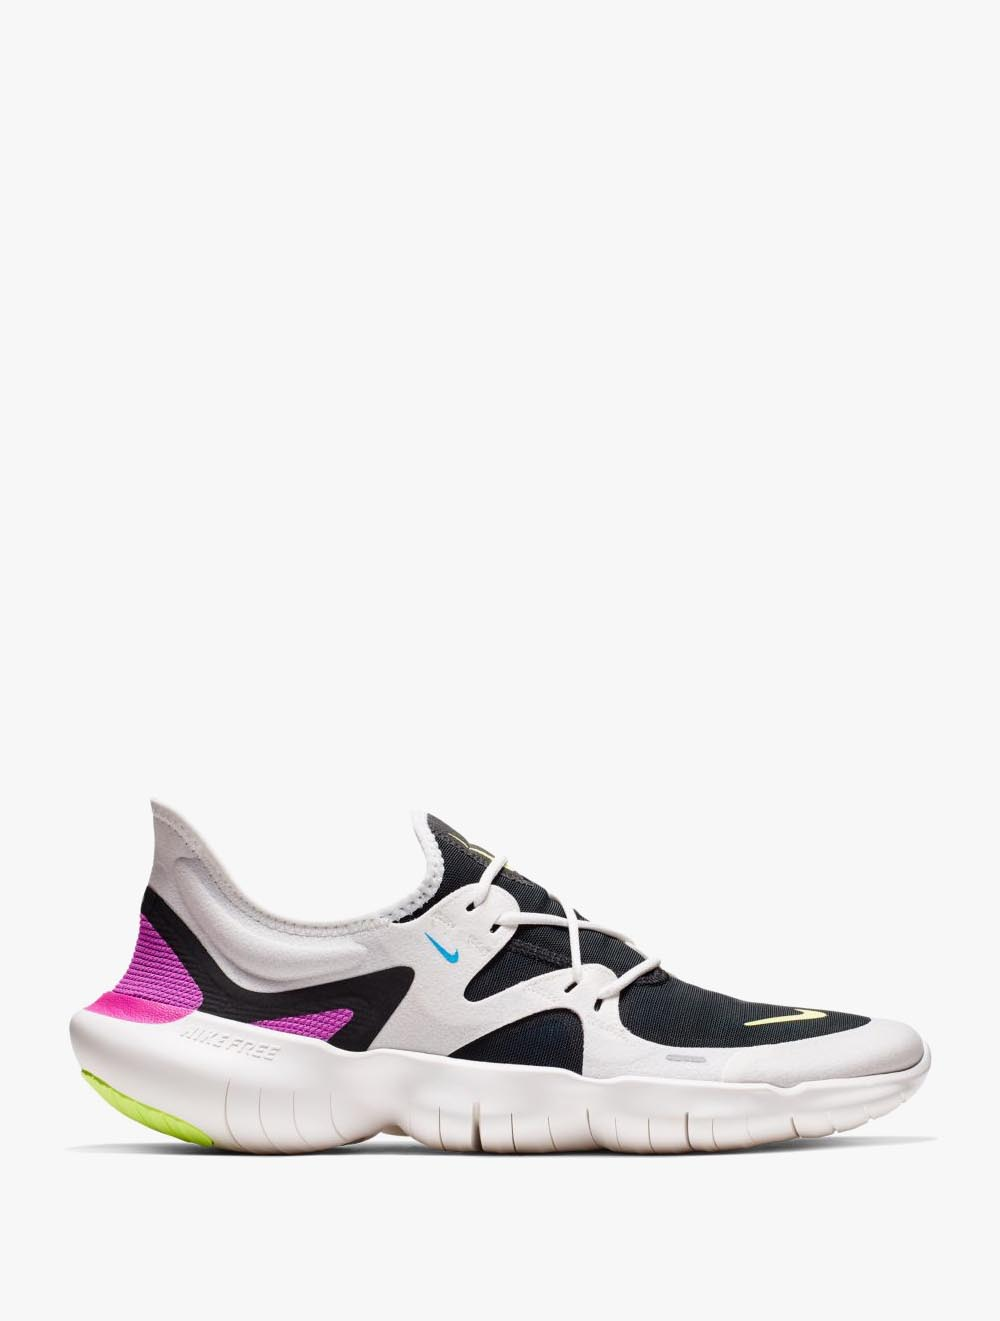 Shop Shoes & Clothes From Nike Planet Sports on